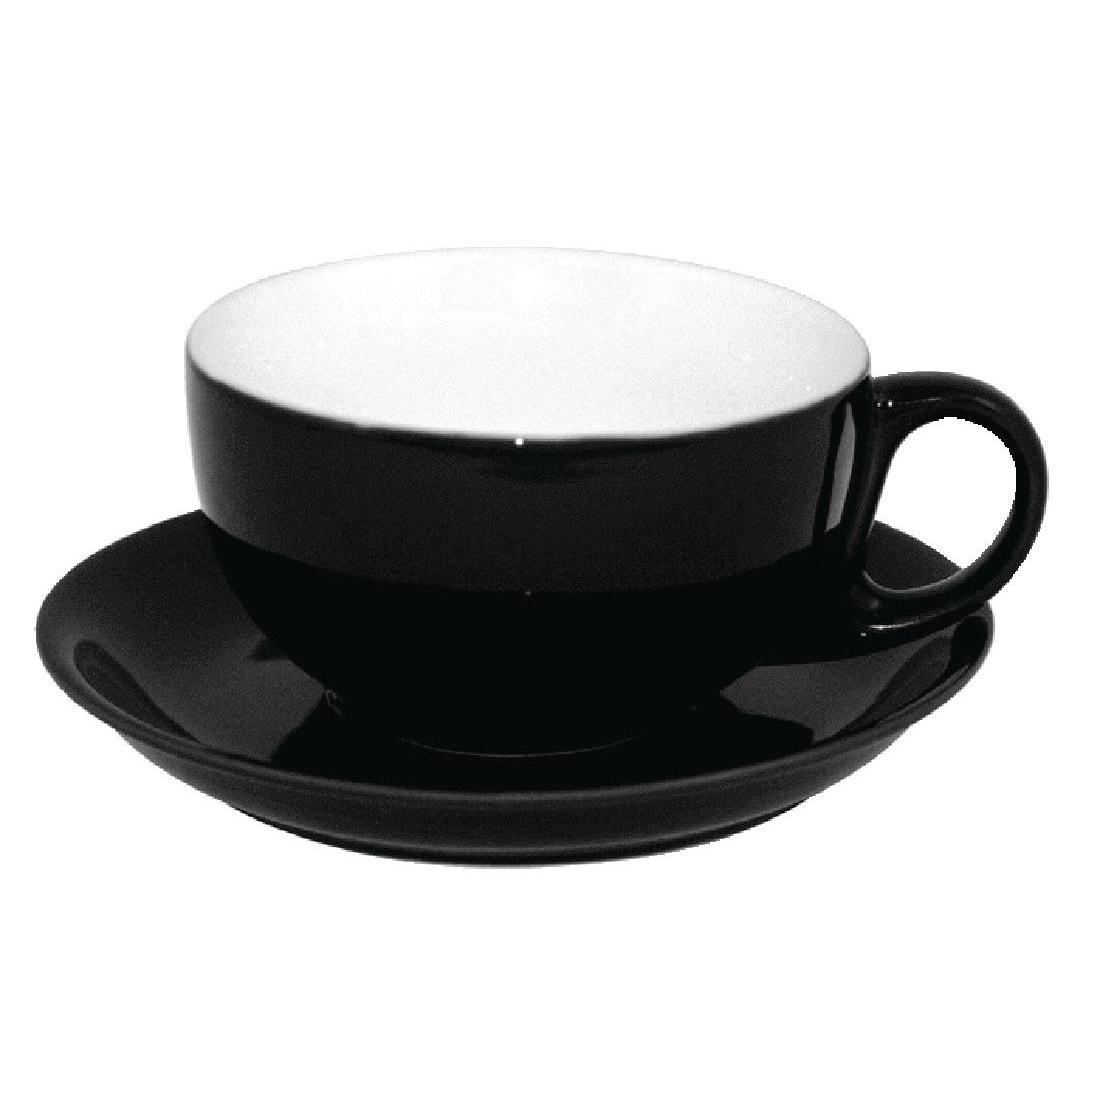 U865 - Olympia Cafe Cappuccino Saucers Black - Case 12 - U865